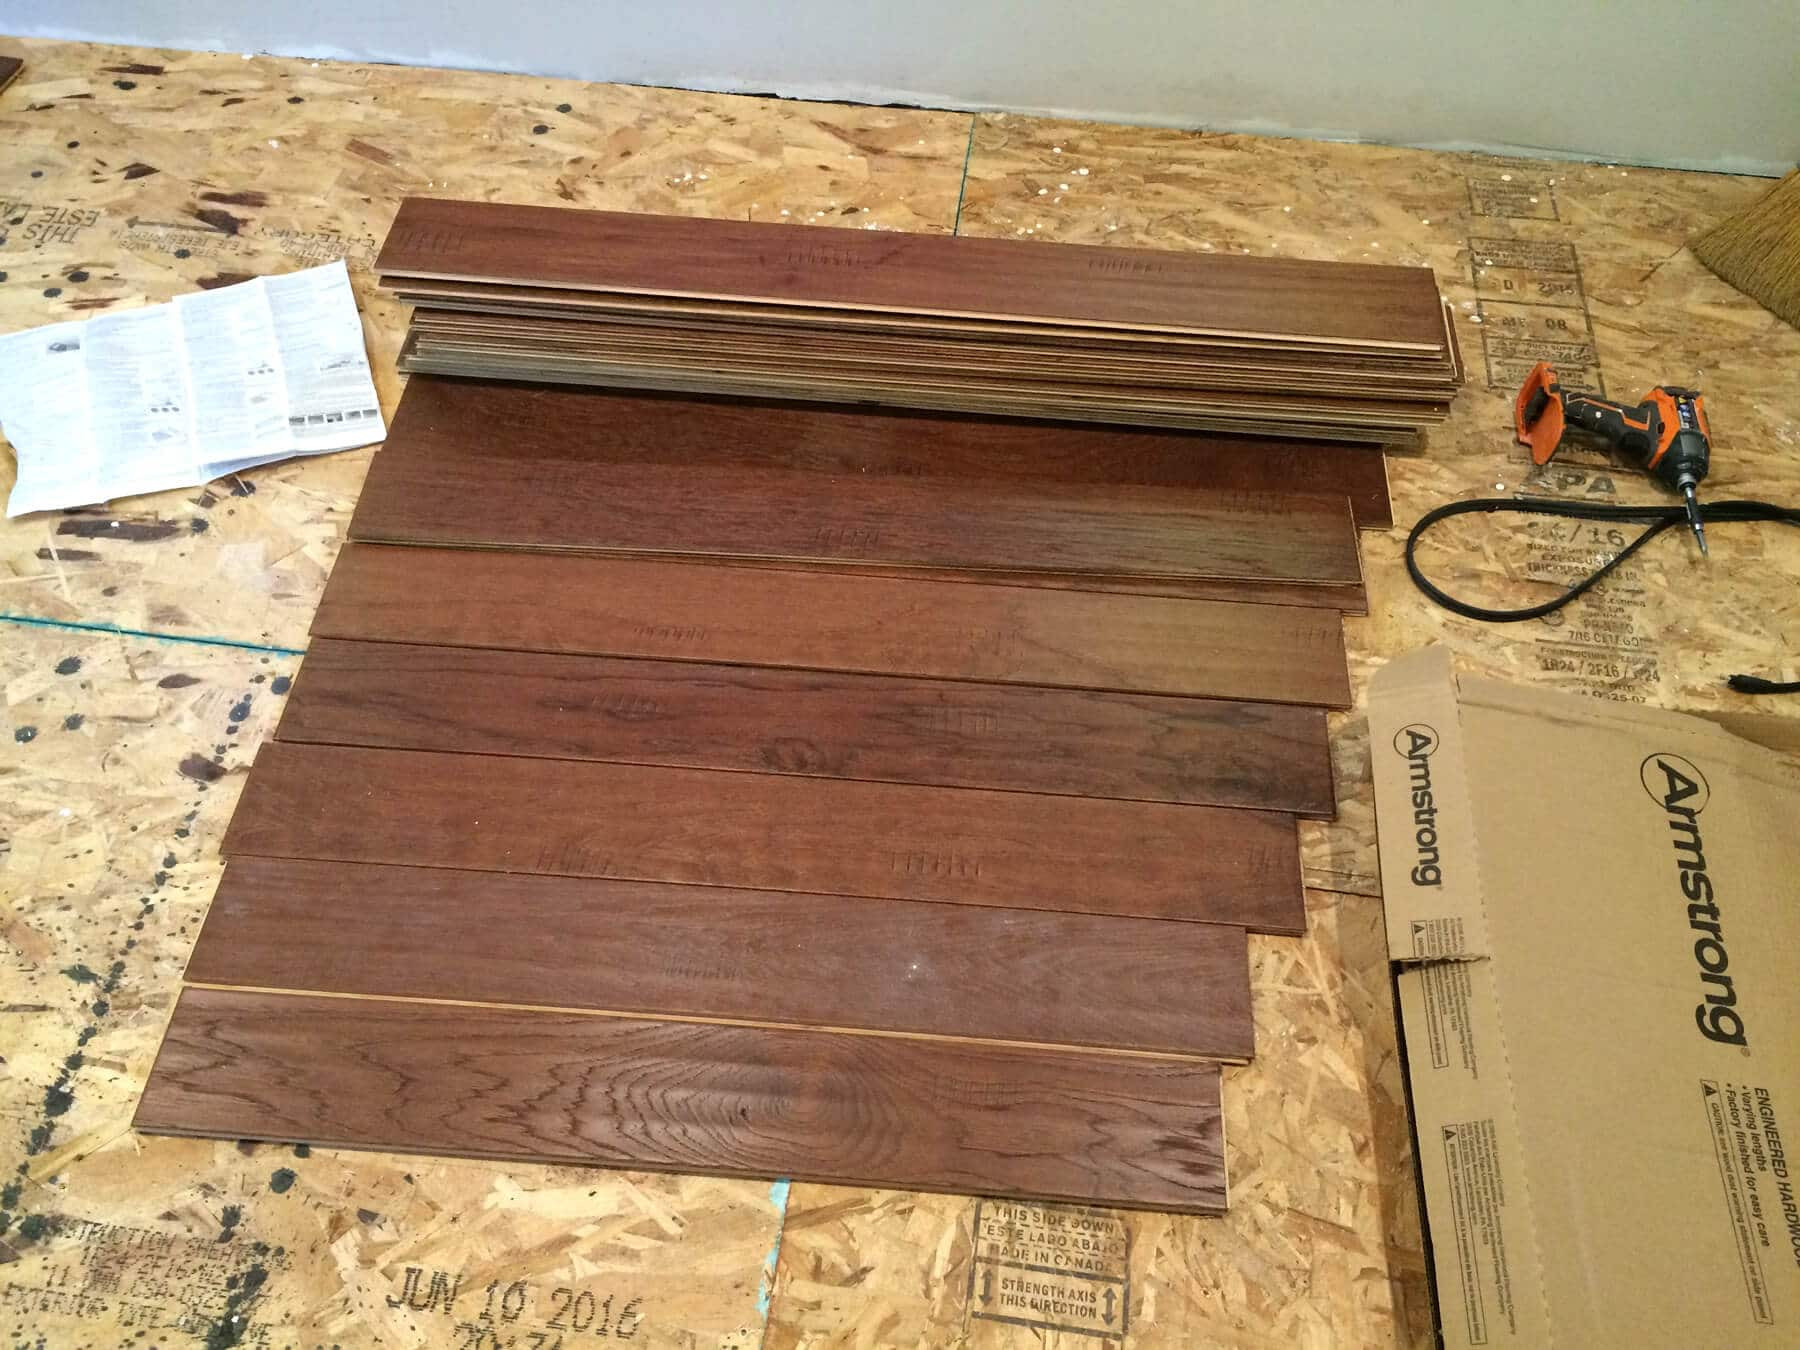 canadian made engineered hardwood flooring of the micro dwelling project part 5 flooring the daring gourmet inside laying down the sub flooring was fine but honestly the thought of installing hardwood floors seemed extremely intimidating we were pretty nervous going in